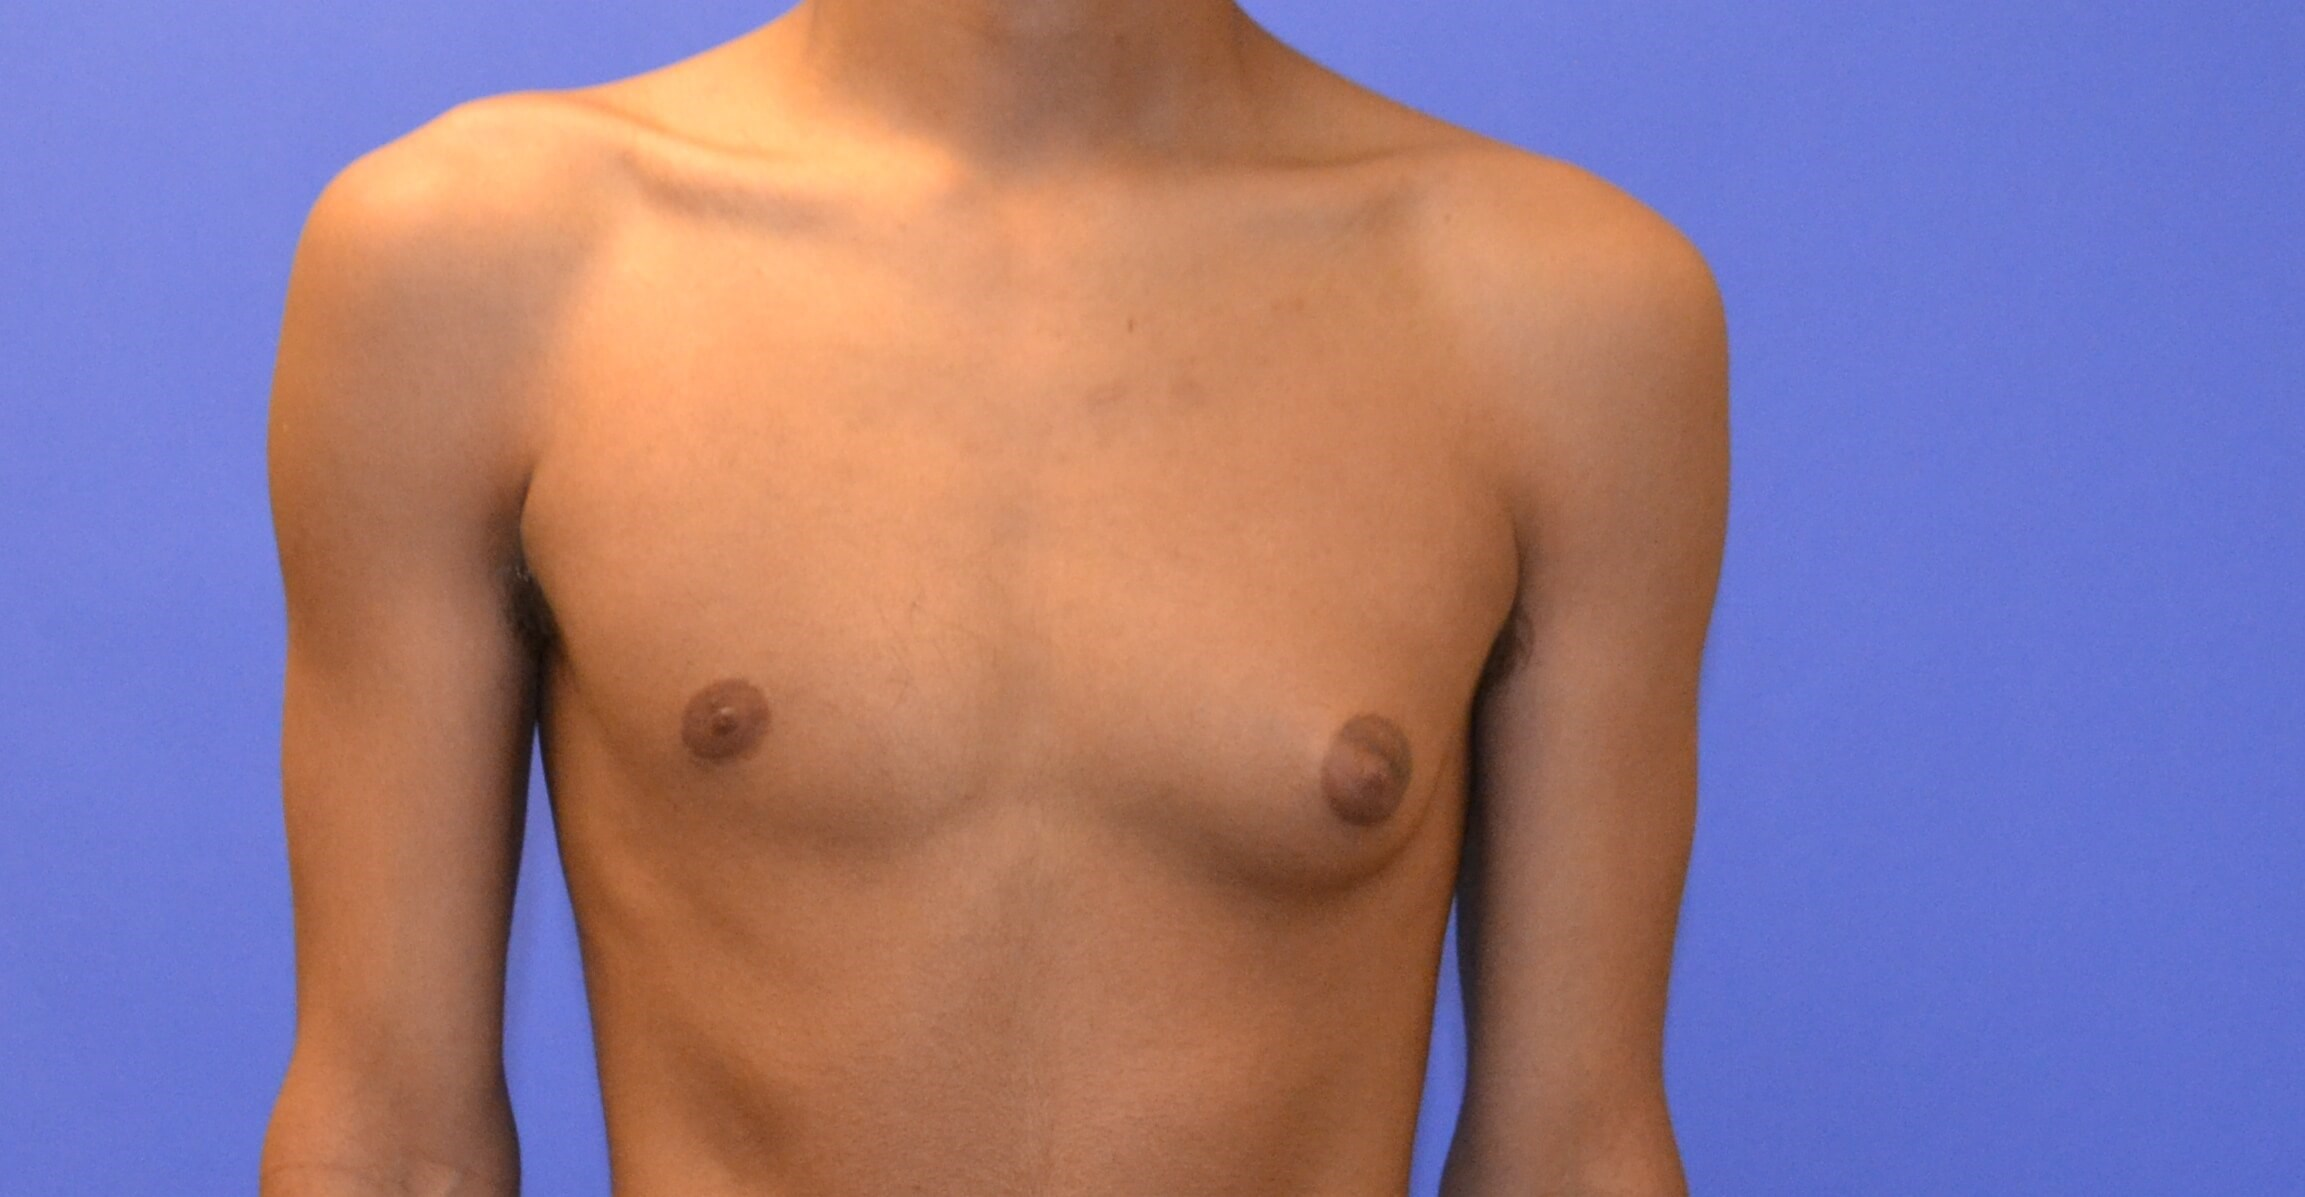 Male Breast Reduction - Texas Before